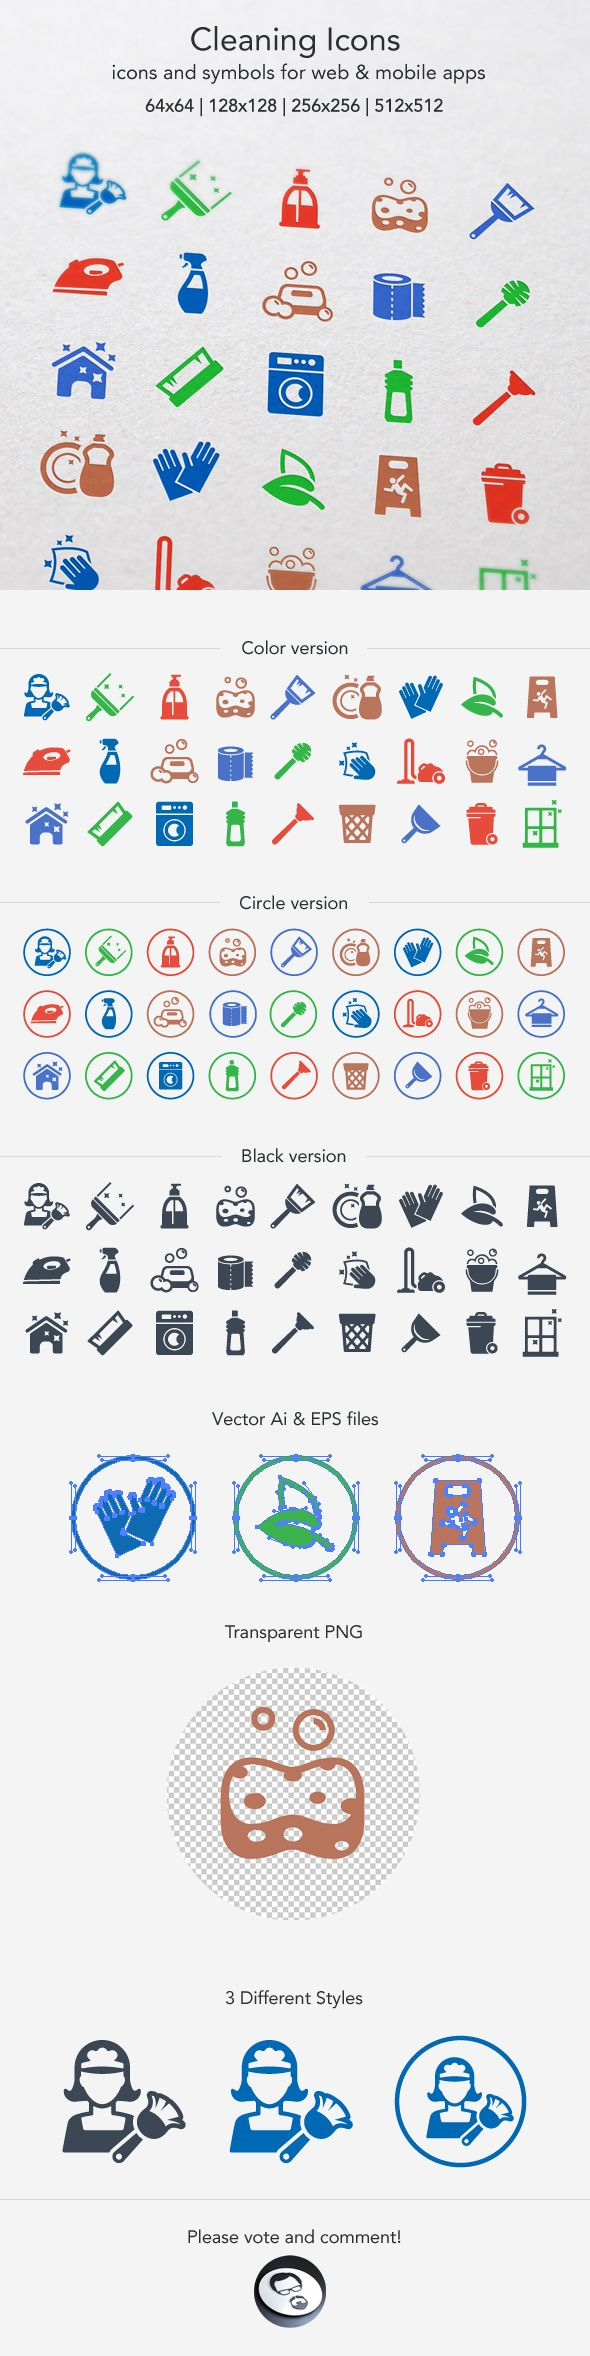 Cleaning Icons by Artem Ottoson, via Behance